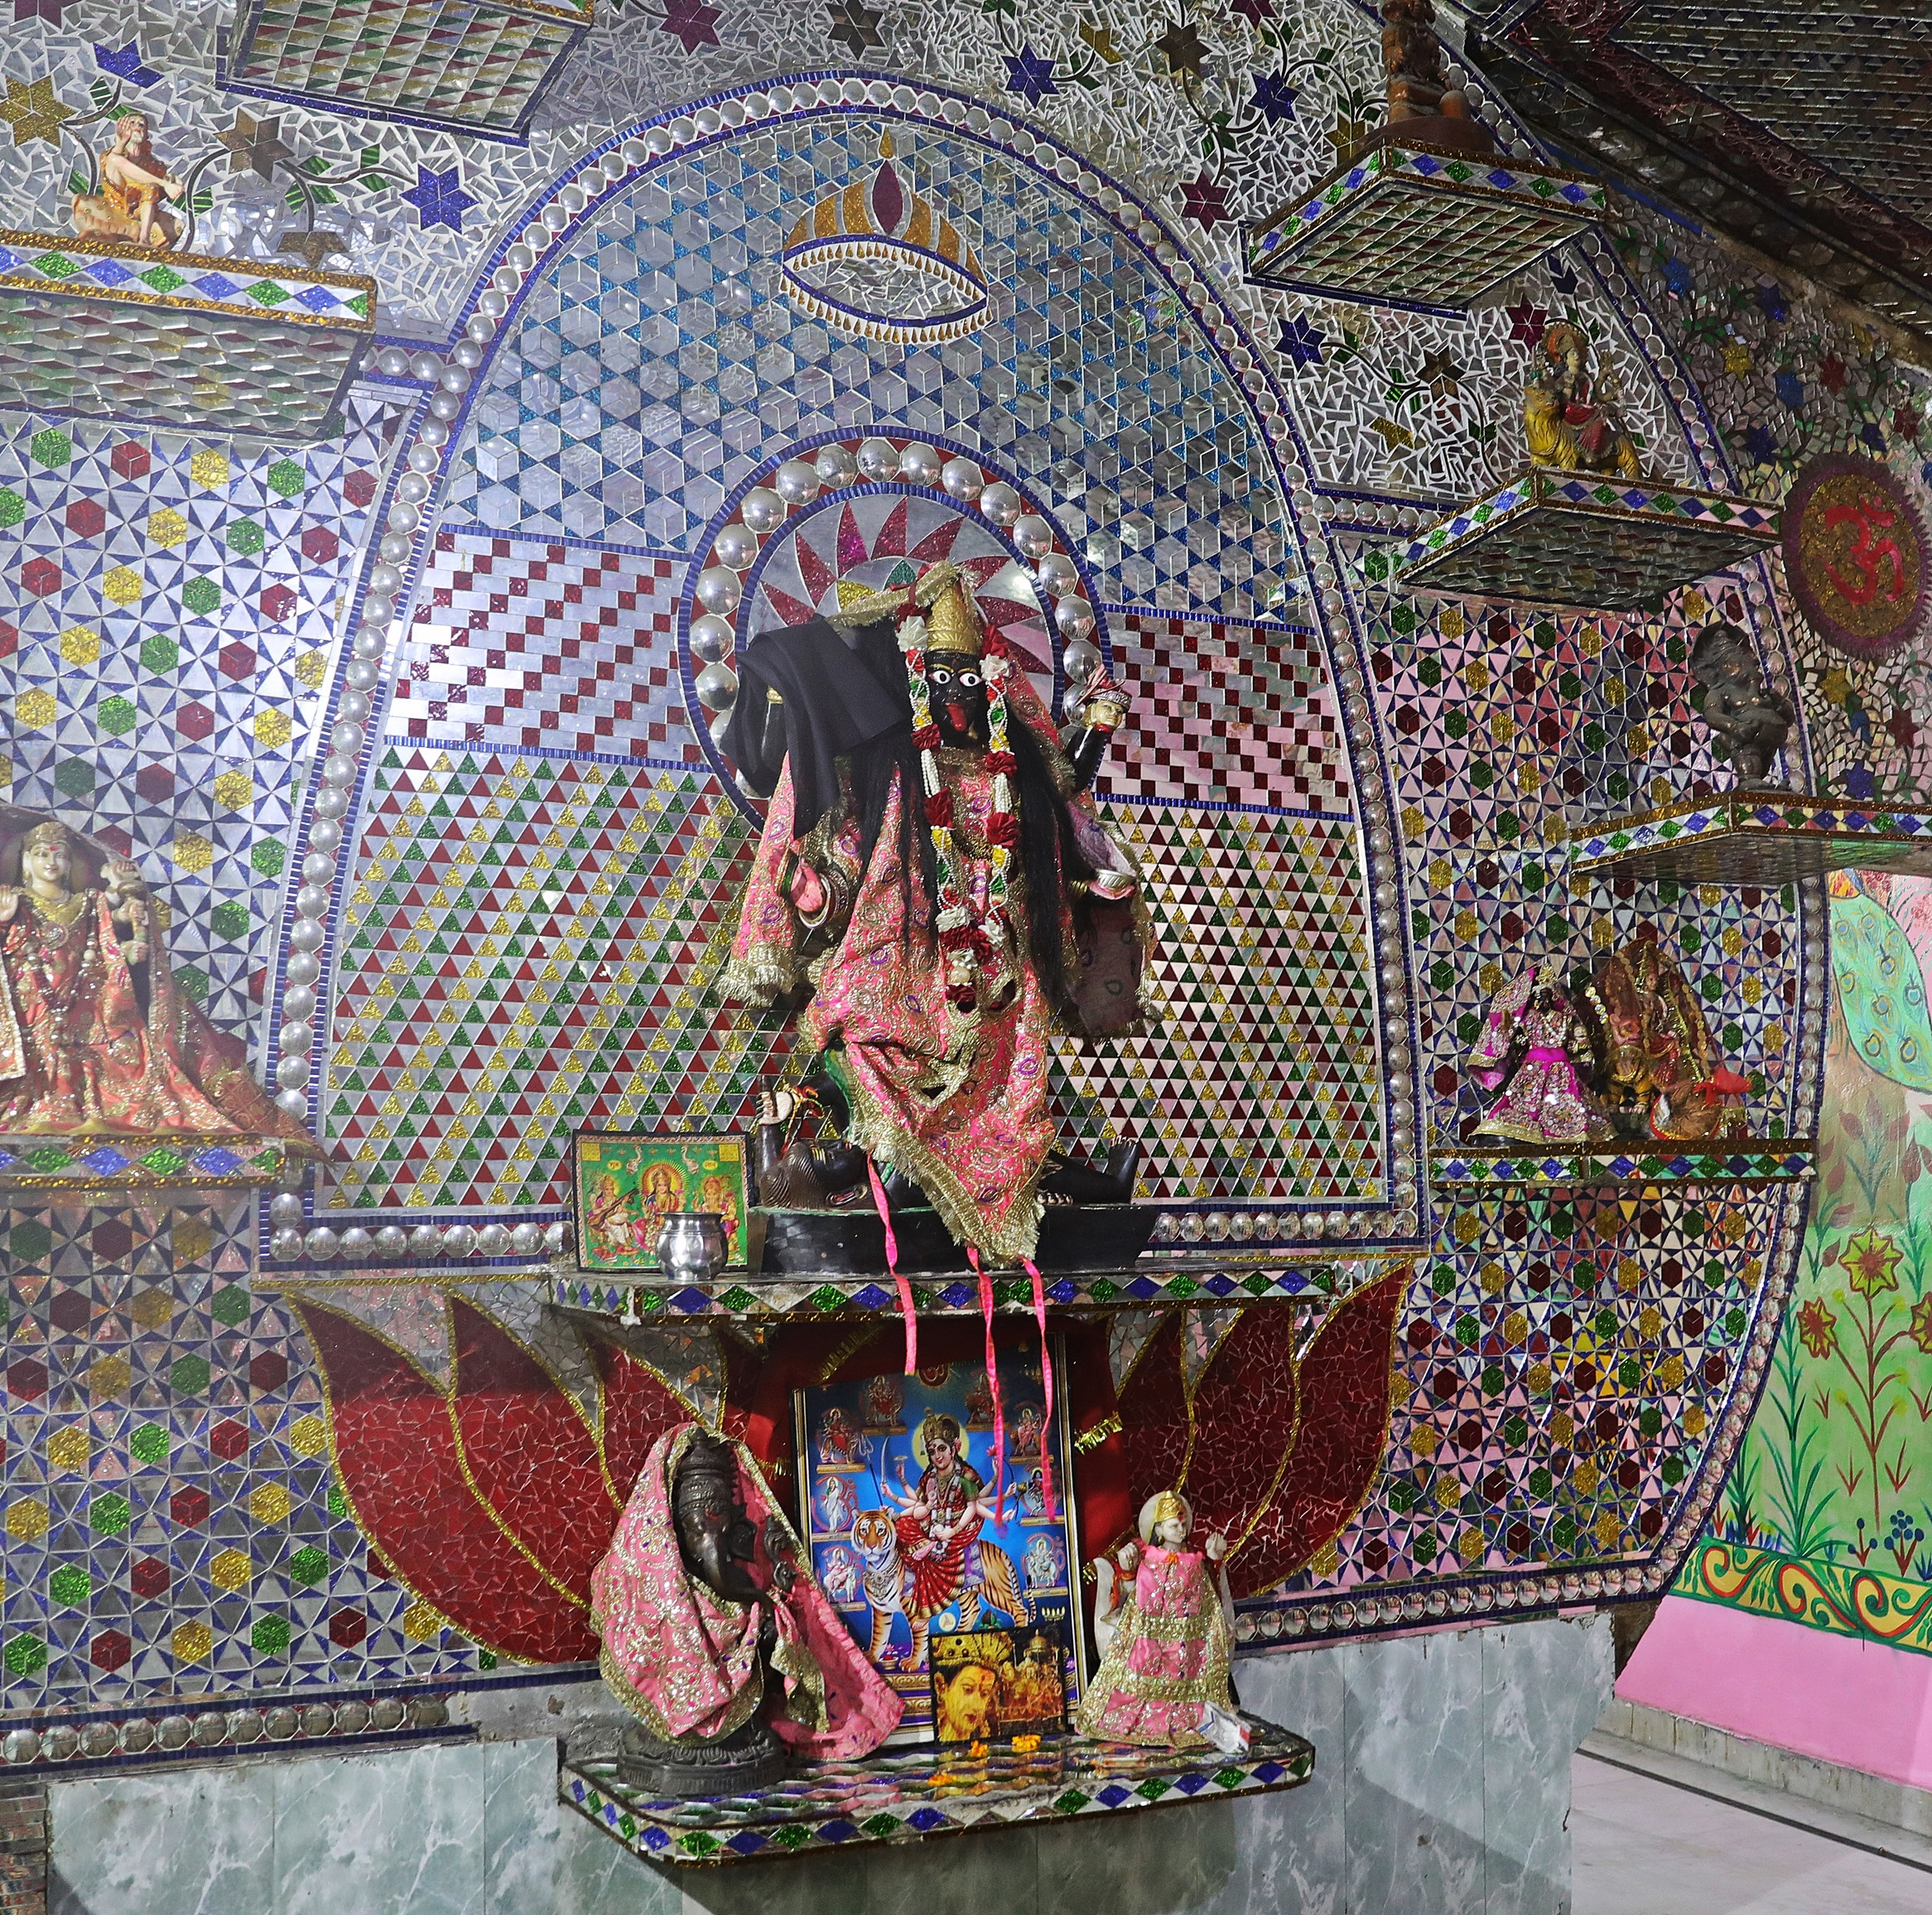 Mirrored room in the Mata Lal Devi Temple, Amritsar